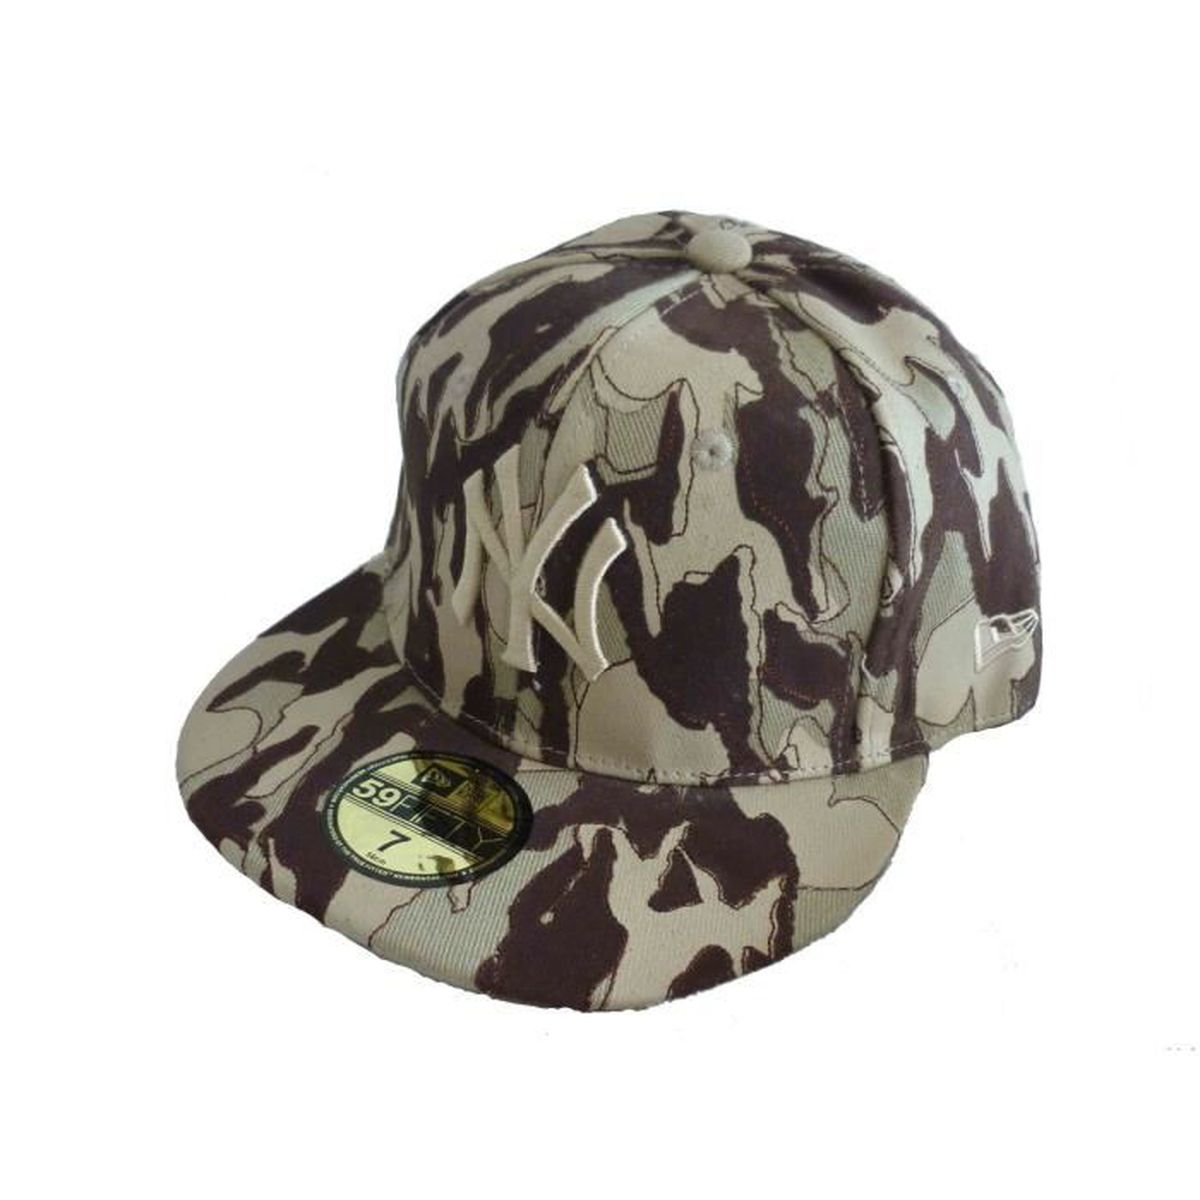 156a1b890c0c8 CASQUETTE NEW ERA **59 FIFTY** NEW YORK TAILLE 7 56cm - Achat ...